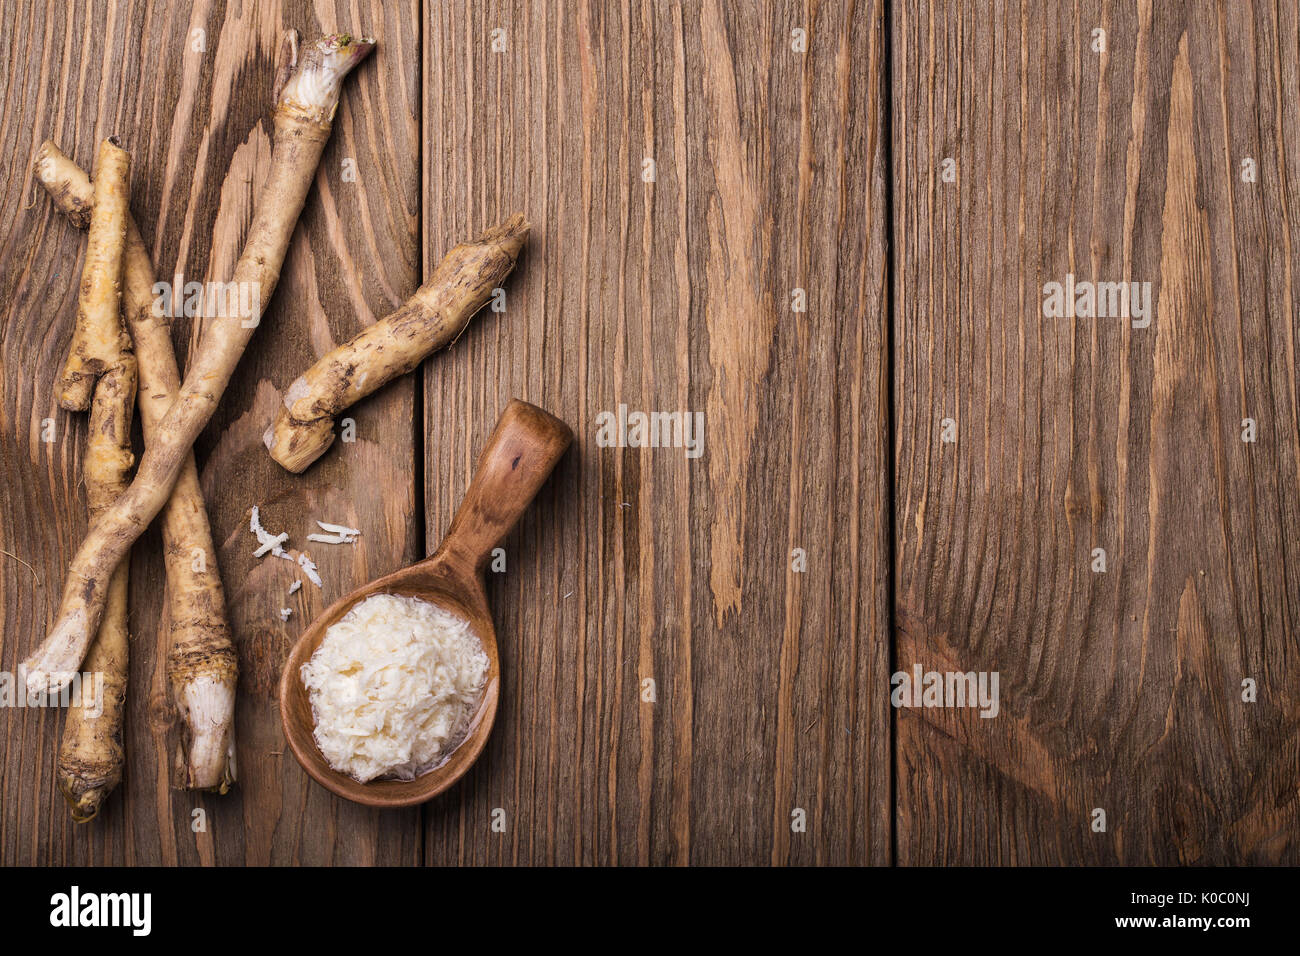 Seasoning of grated horseradish with space for text - Stock Image